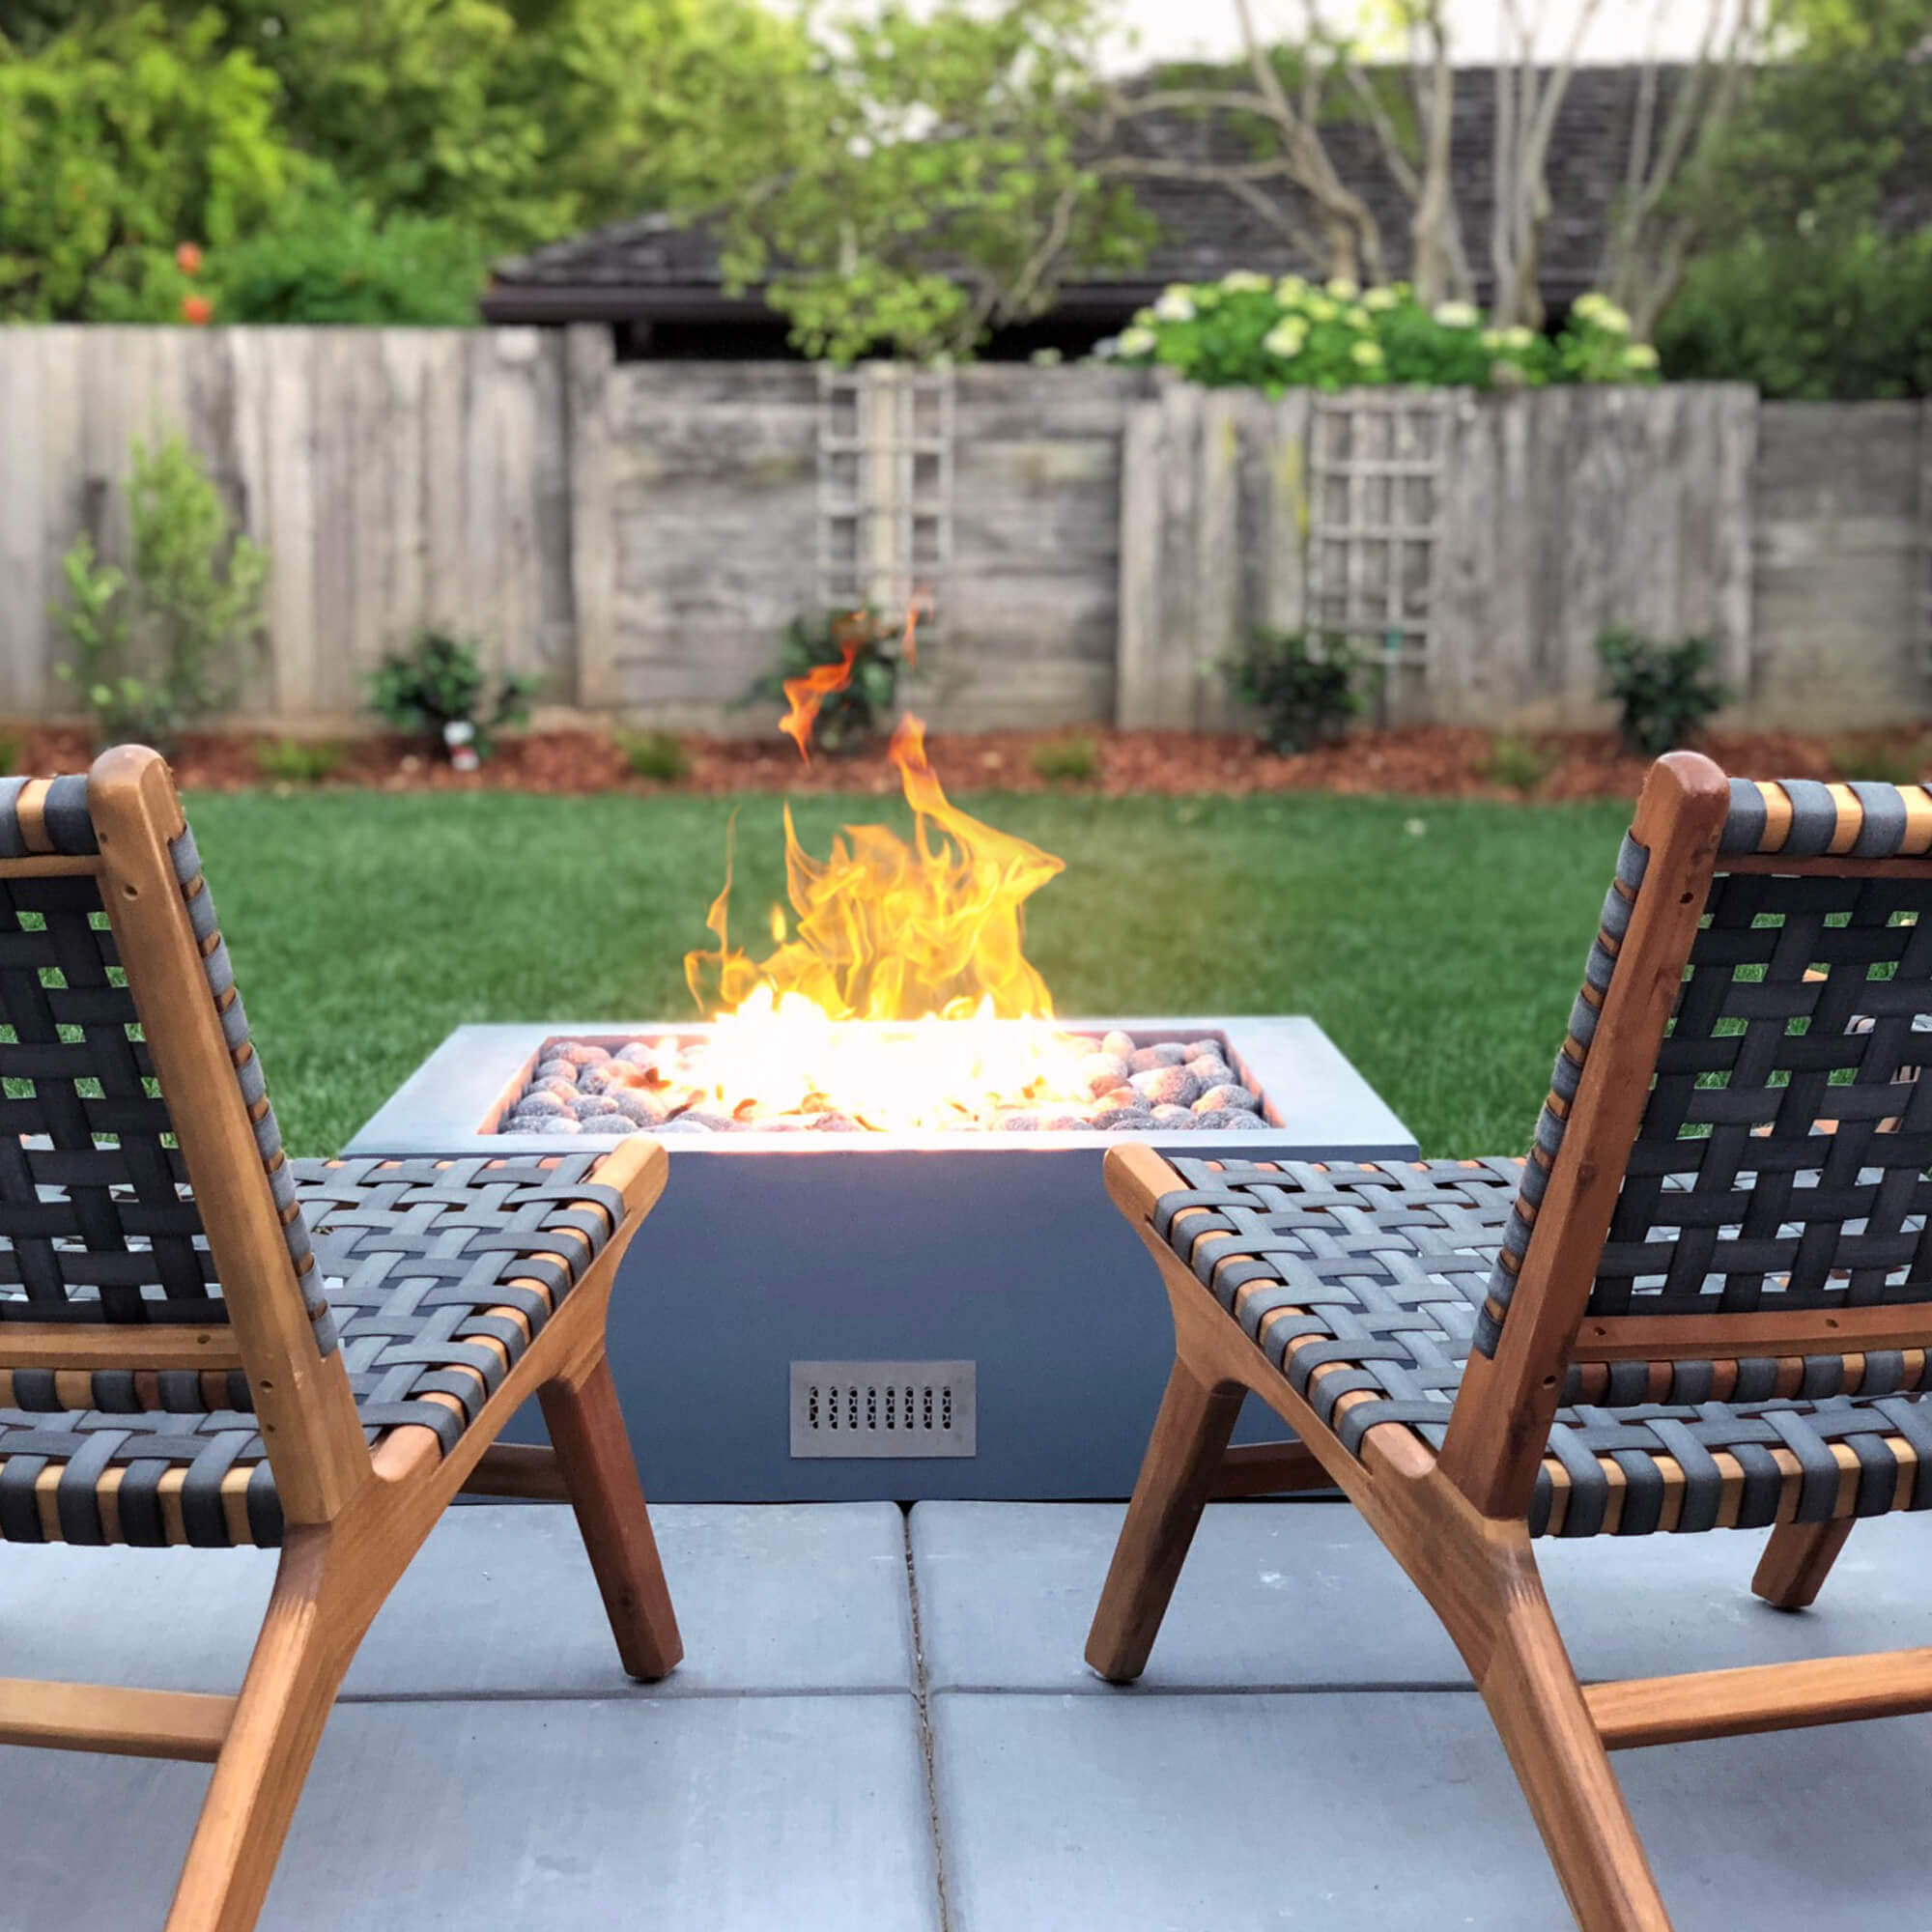 Finished Fire Pits for backyards